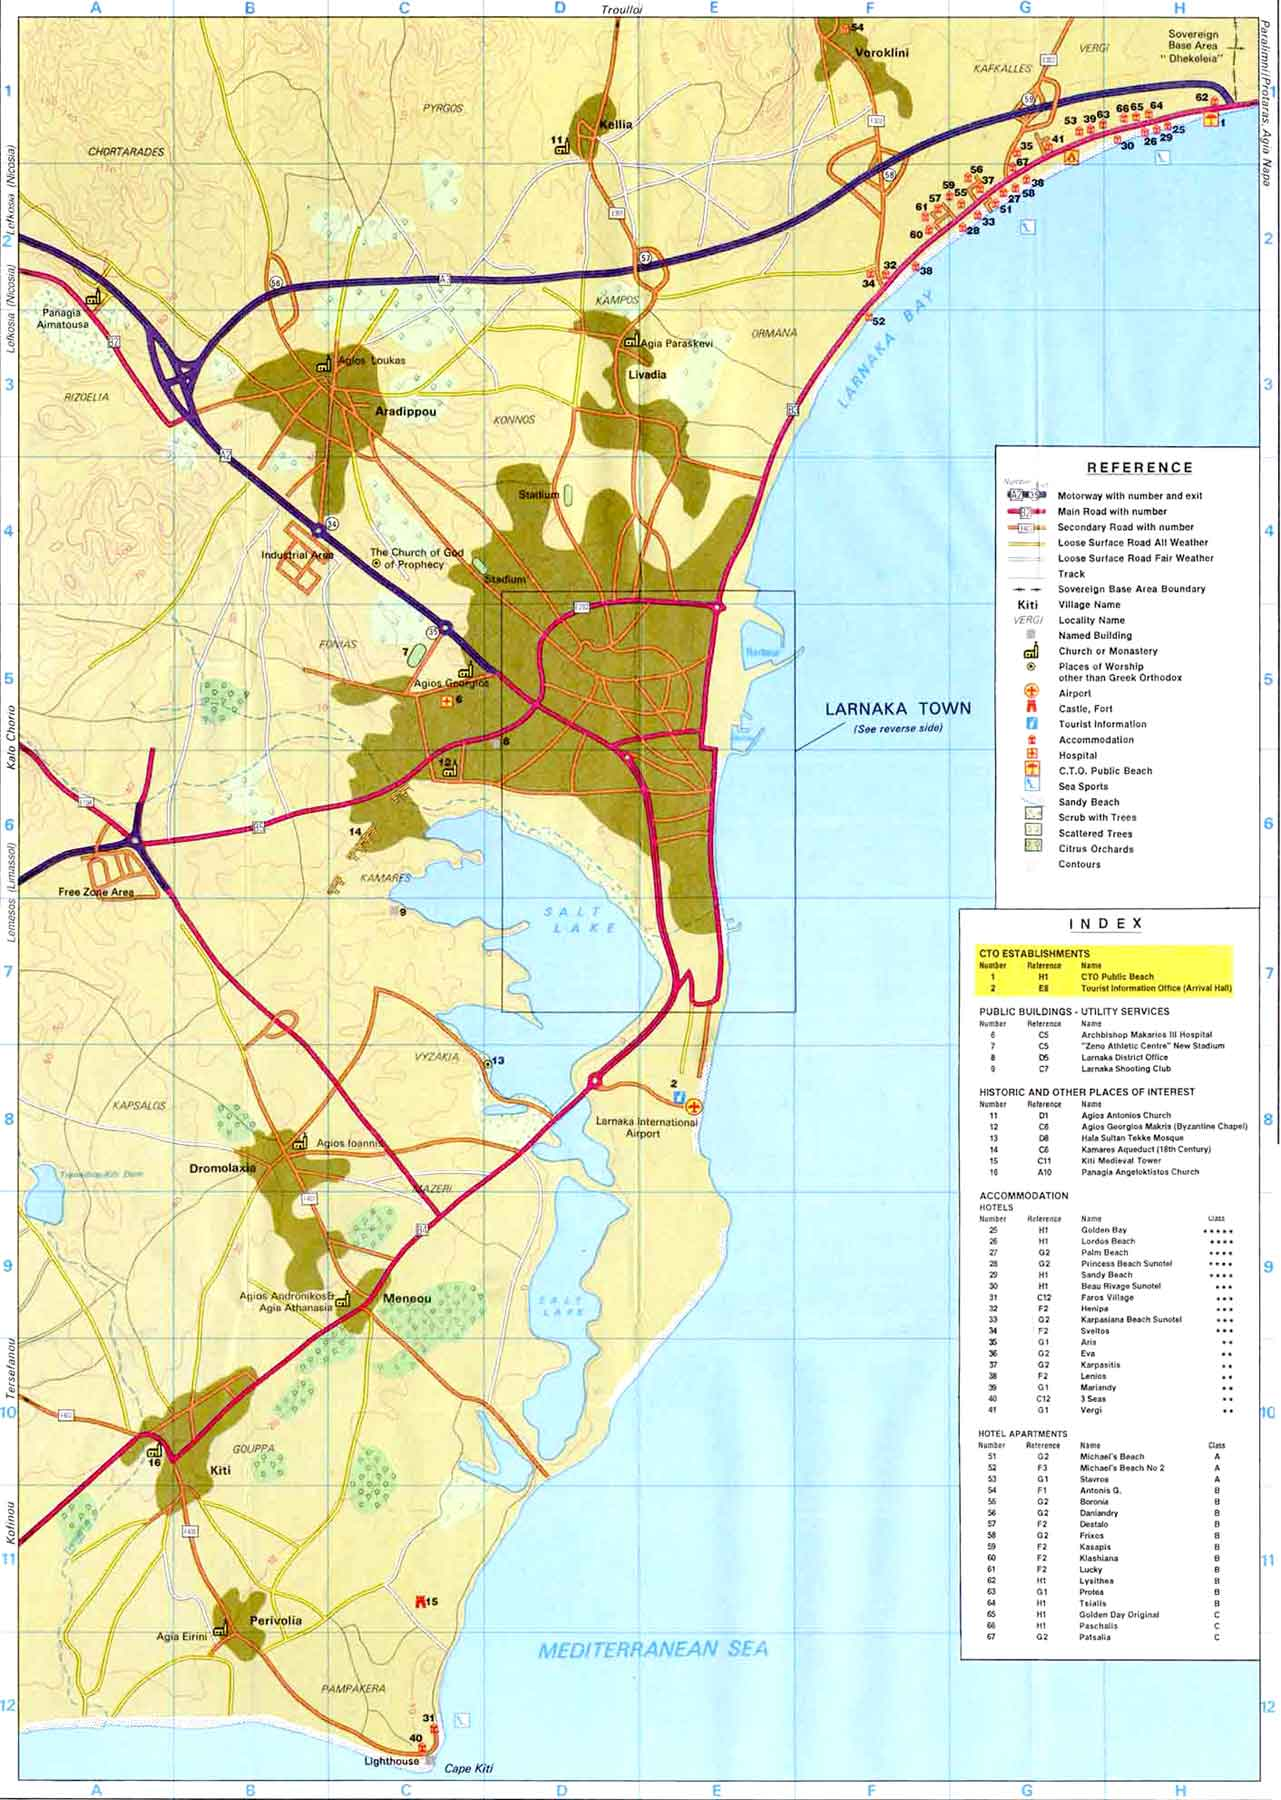 Larnaca Maps Larnaca area map and Larnaca city map